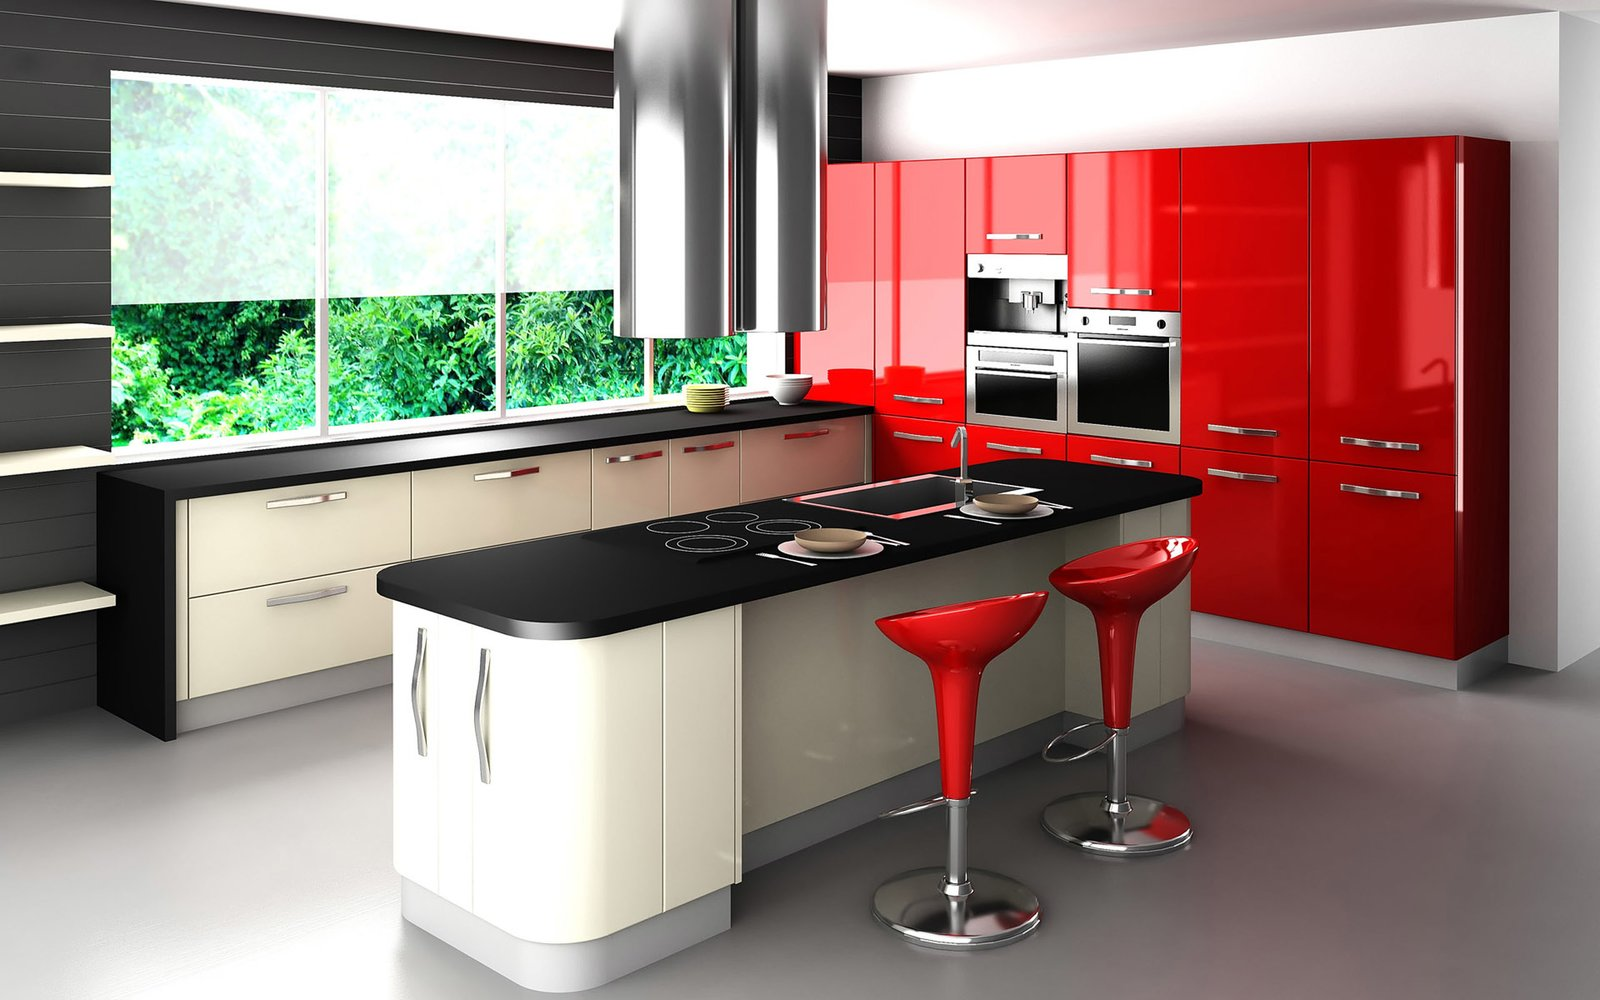 Kitchen and Colorful Cabinet All about #red  Photo 16 of 21 in Red, Red, and More Red! 20 Bold Interiors That Make a Statement